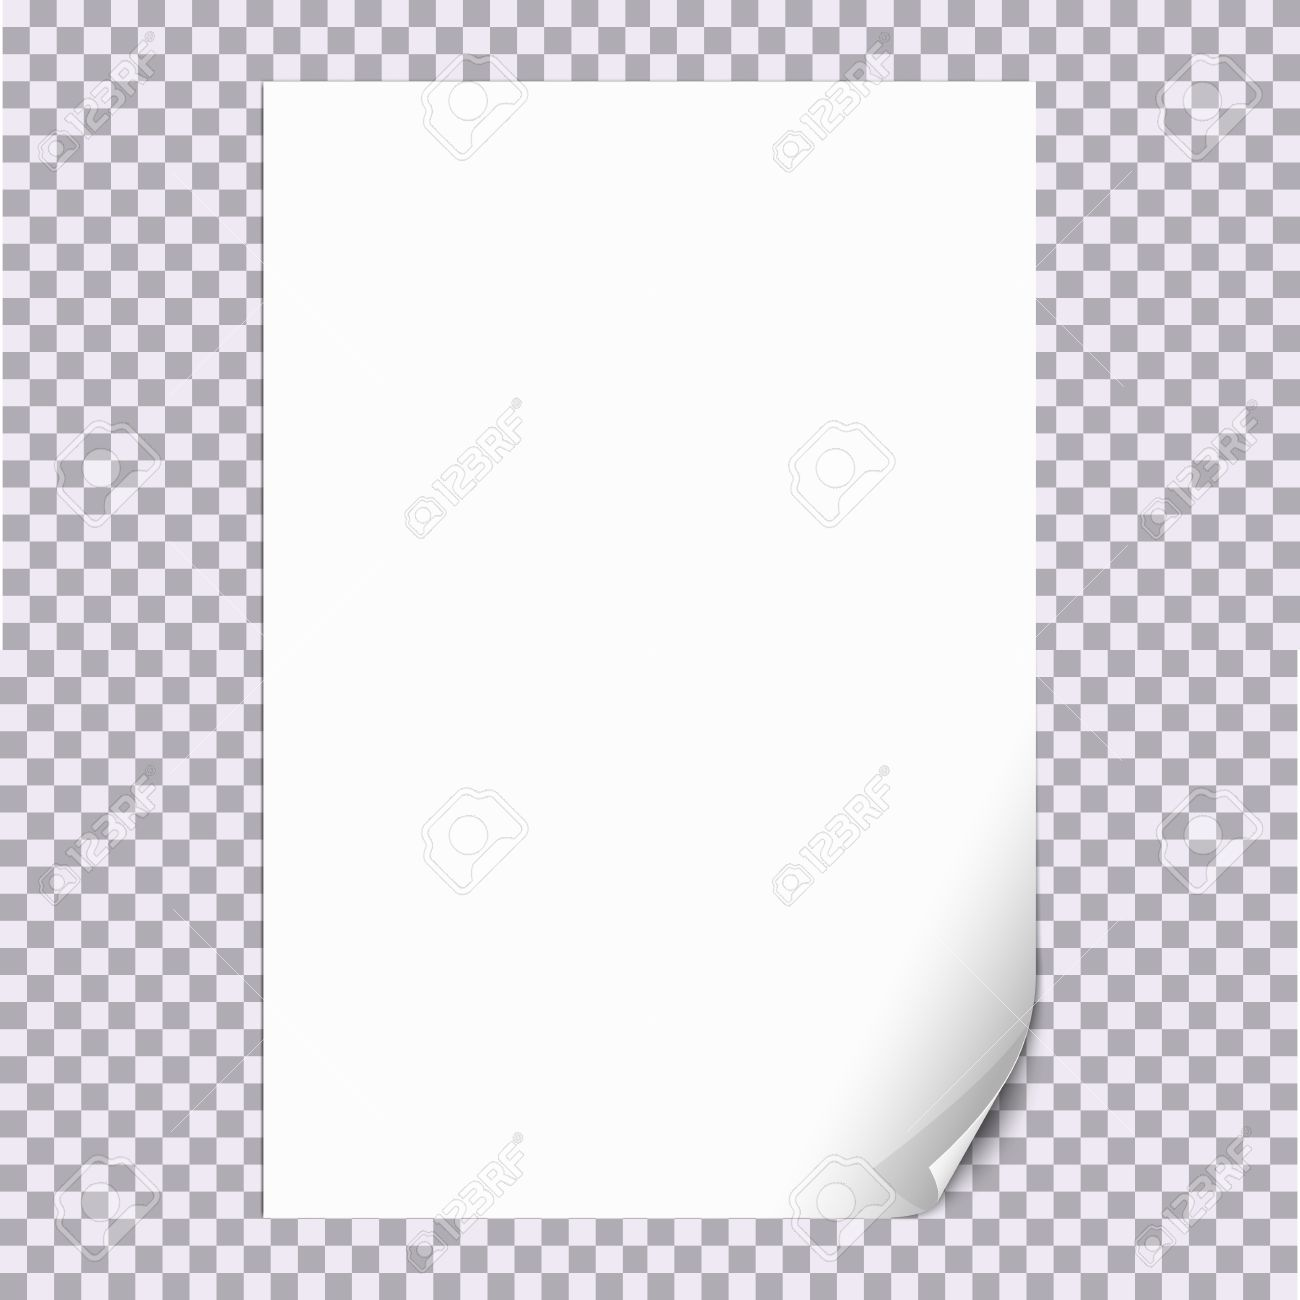 curled paper corner a4 format with transparent background for